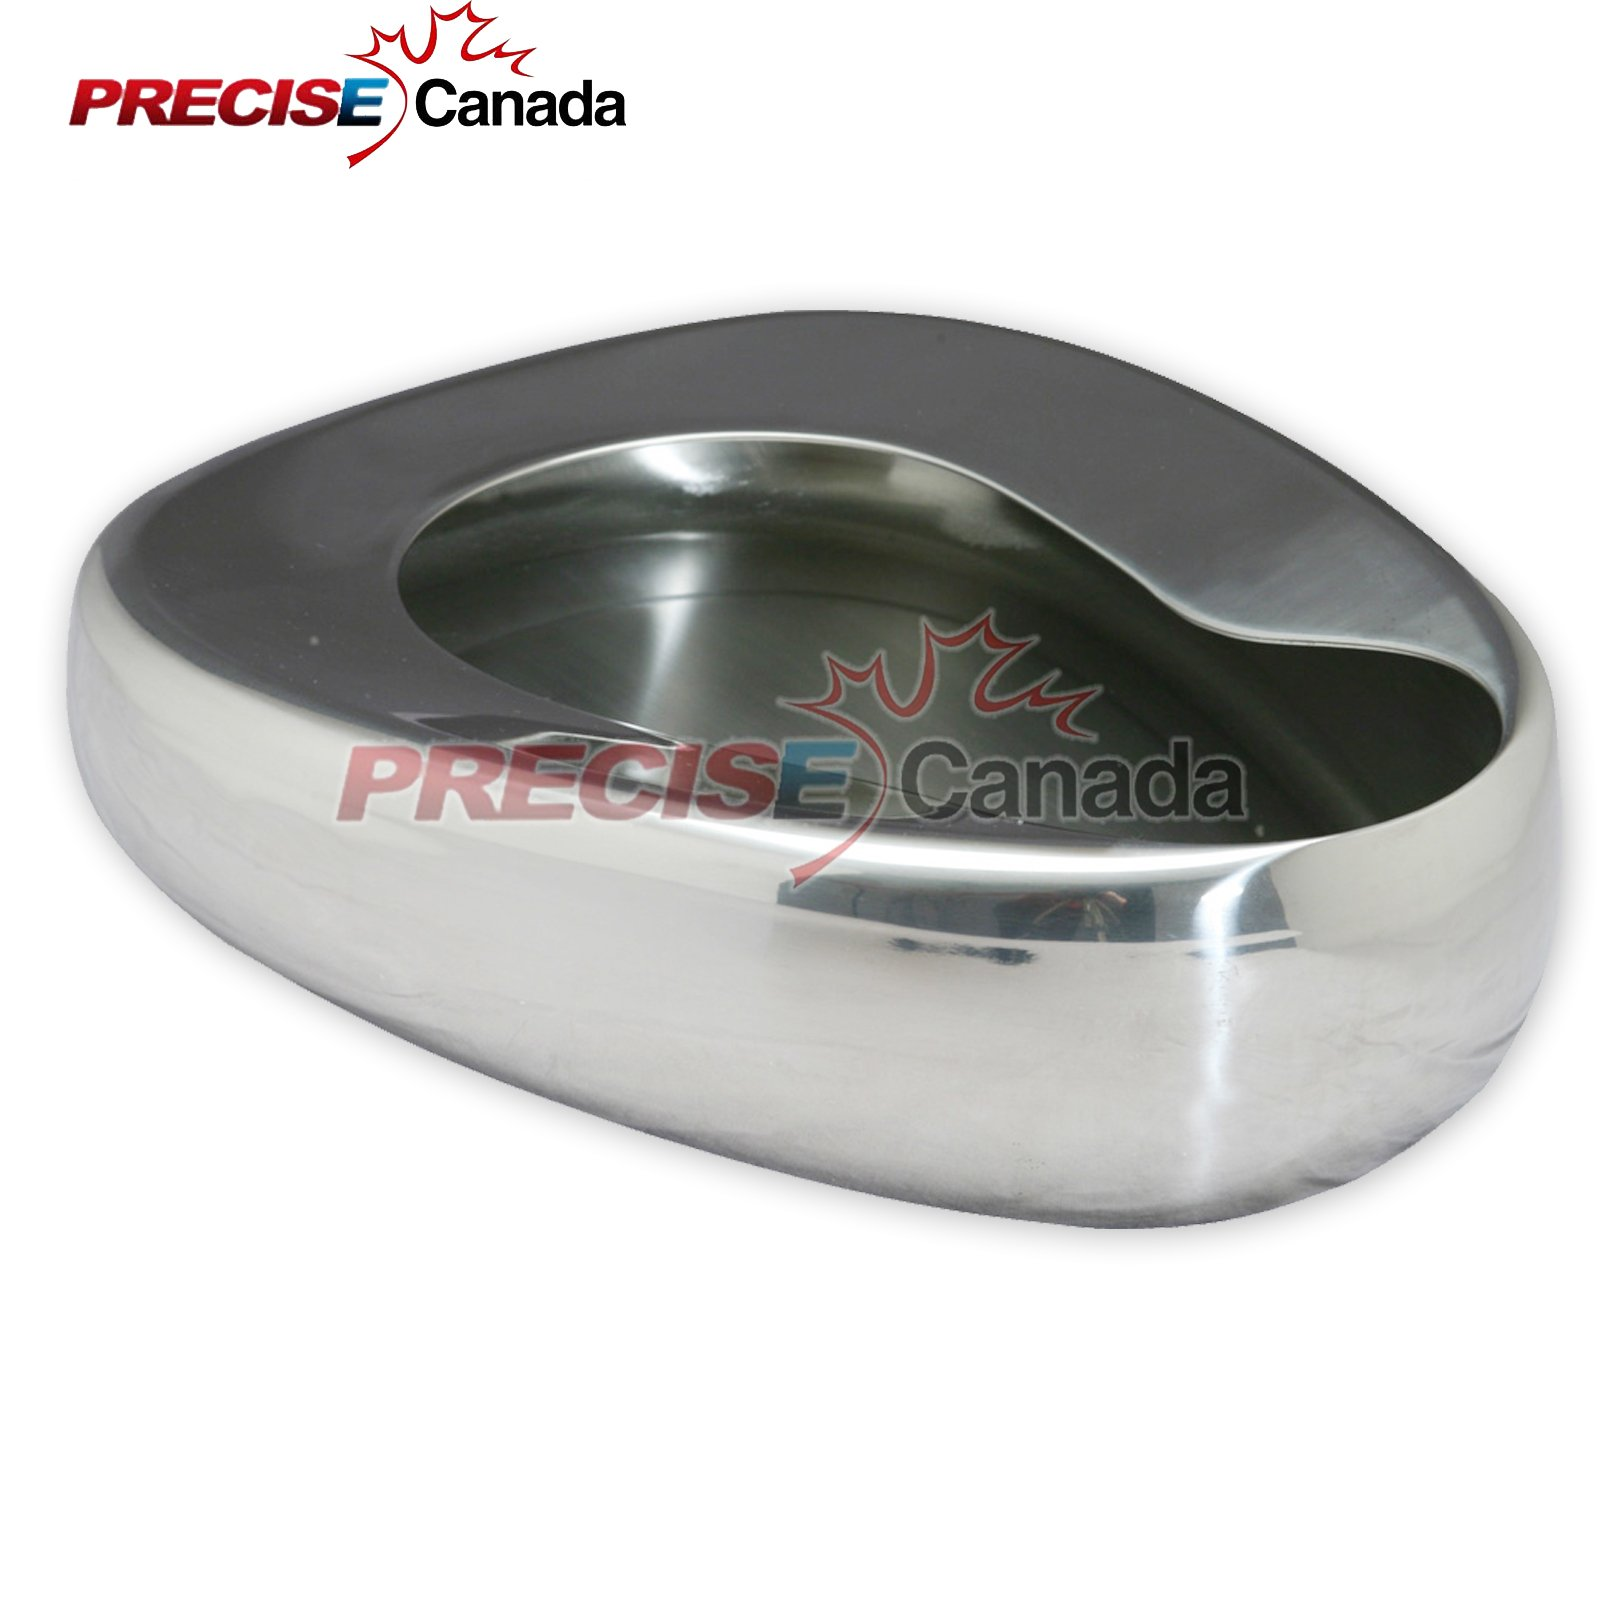 PC STAINLESS STEEL BED PANS - ADULT: 14'' X 11 3/8'' QUALITY BED PANS